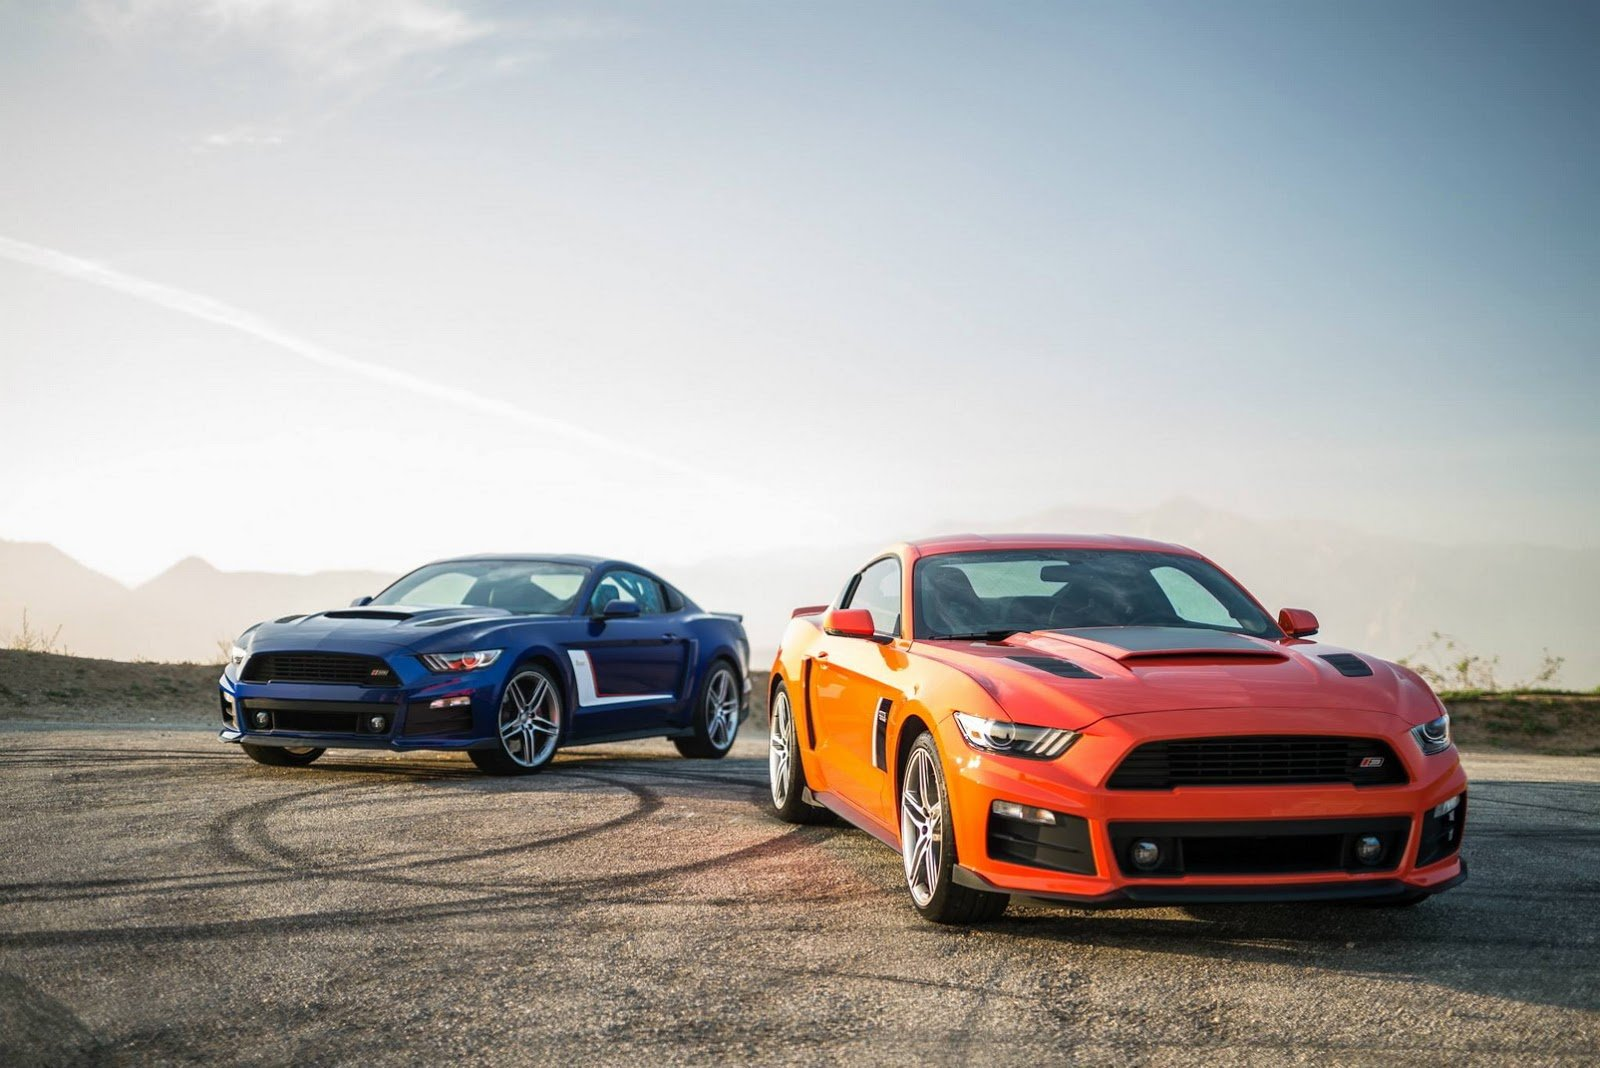 Roush Performance Parts Now Available to Europeans Through Mountune